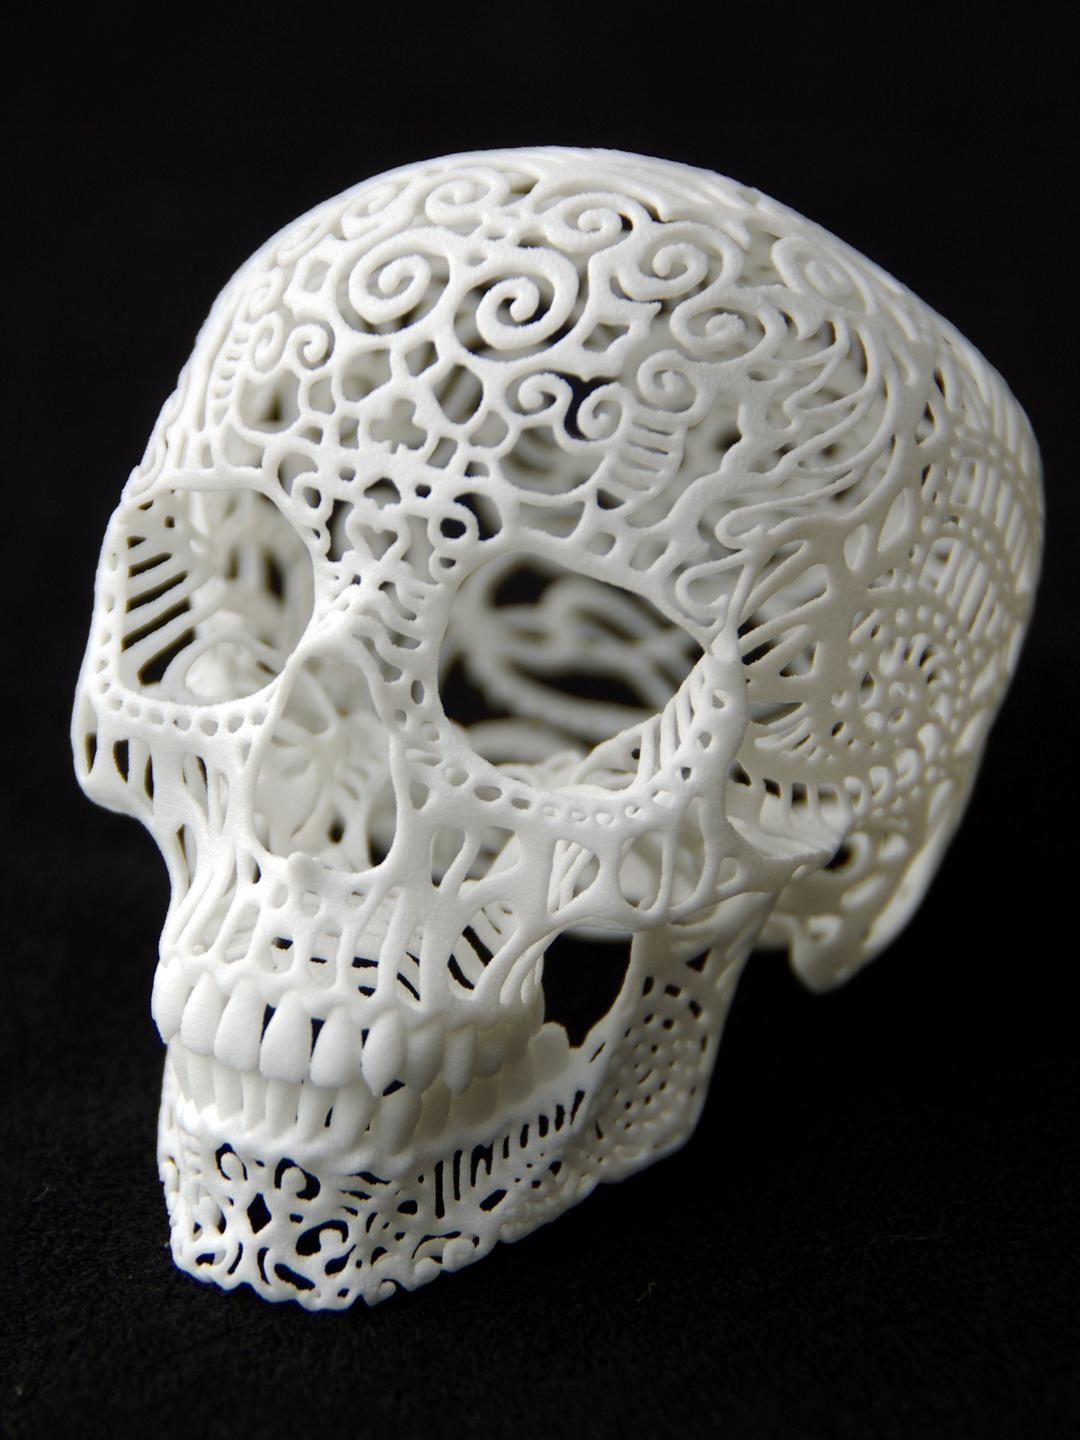 Pin By Antonio Brasko On Skull With Images Skull Sculpture Skull Art